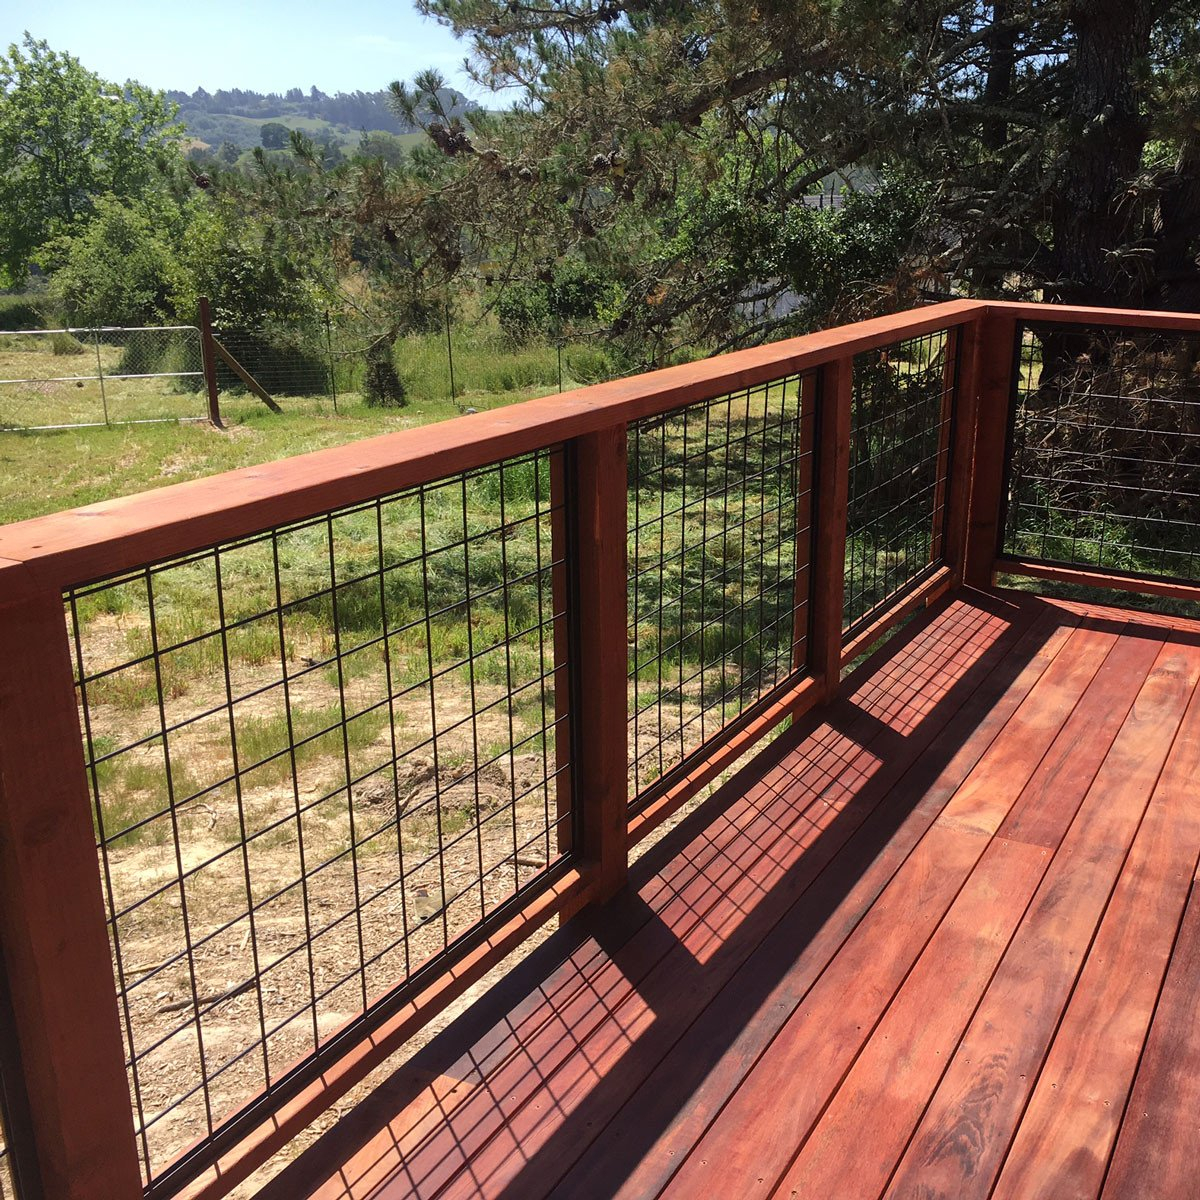 Cattle Panel Deck Railing Droughtrelief Org